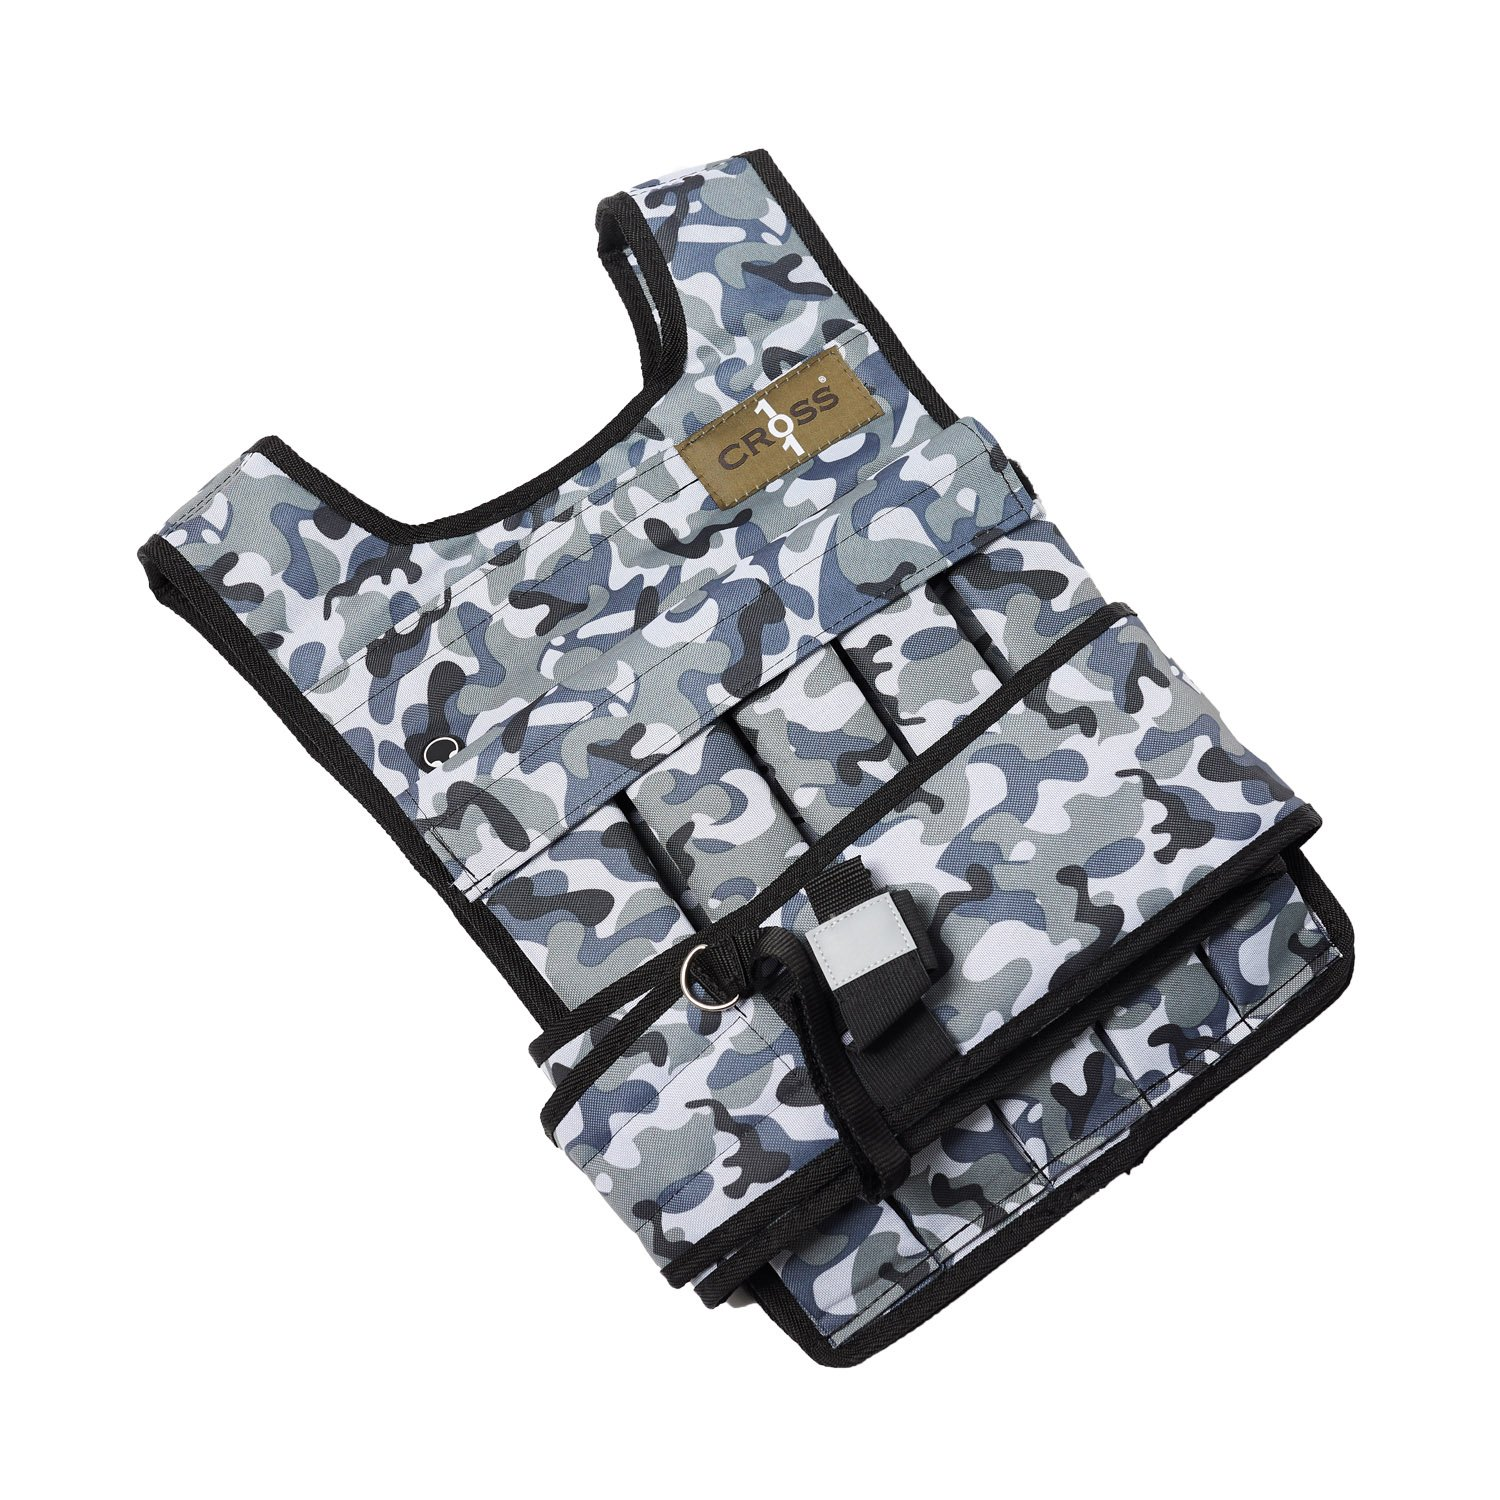 CROSS101 Camouflage Adjustable Weighted Vest 20lbs – 80lbs with Phone Pocket Water Bottle Holder